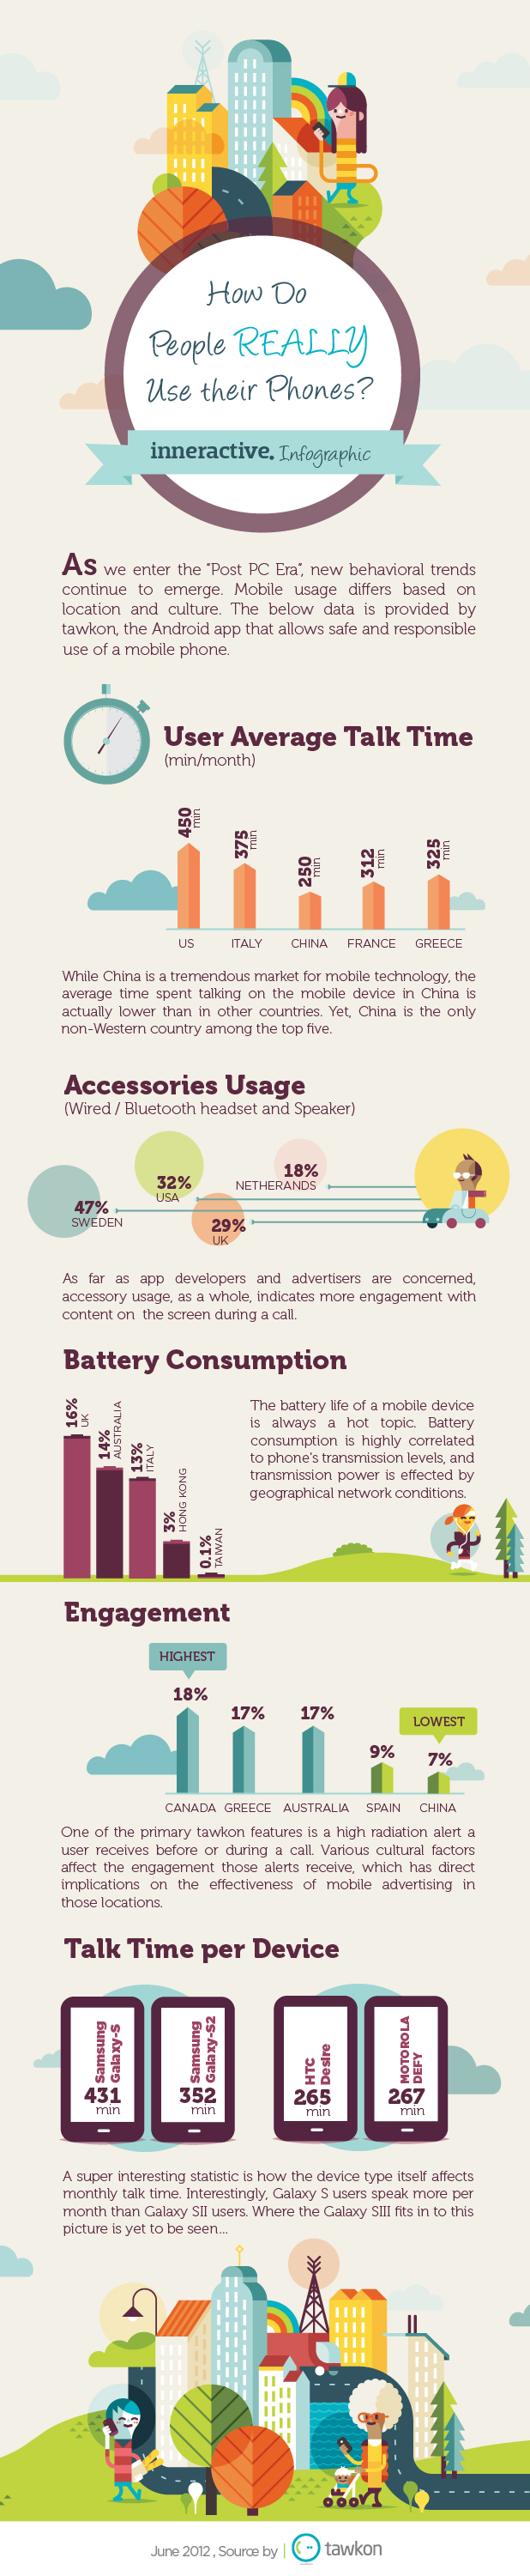 Mobile-Phones-Usage-infographic